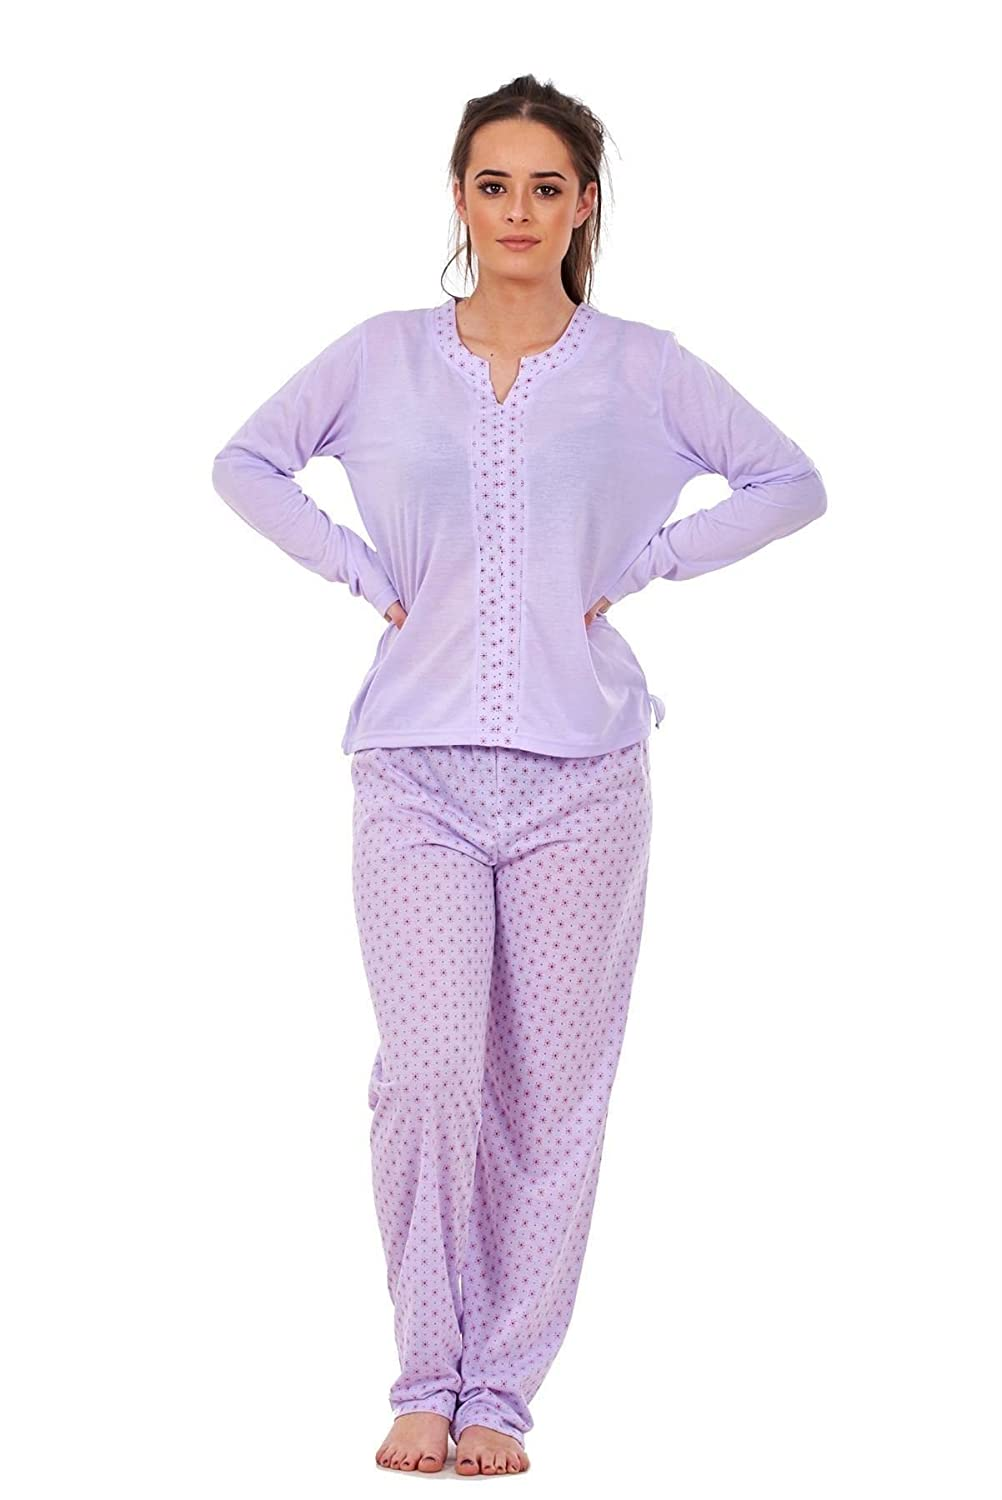 Bay eCom UK Ladies Pyjama Set V Neck Floral Printed Long Sleeve Quality Cotton Nightwear PJS Does not Apply